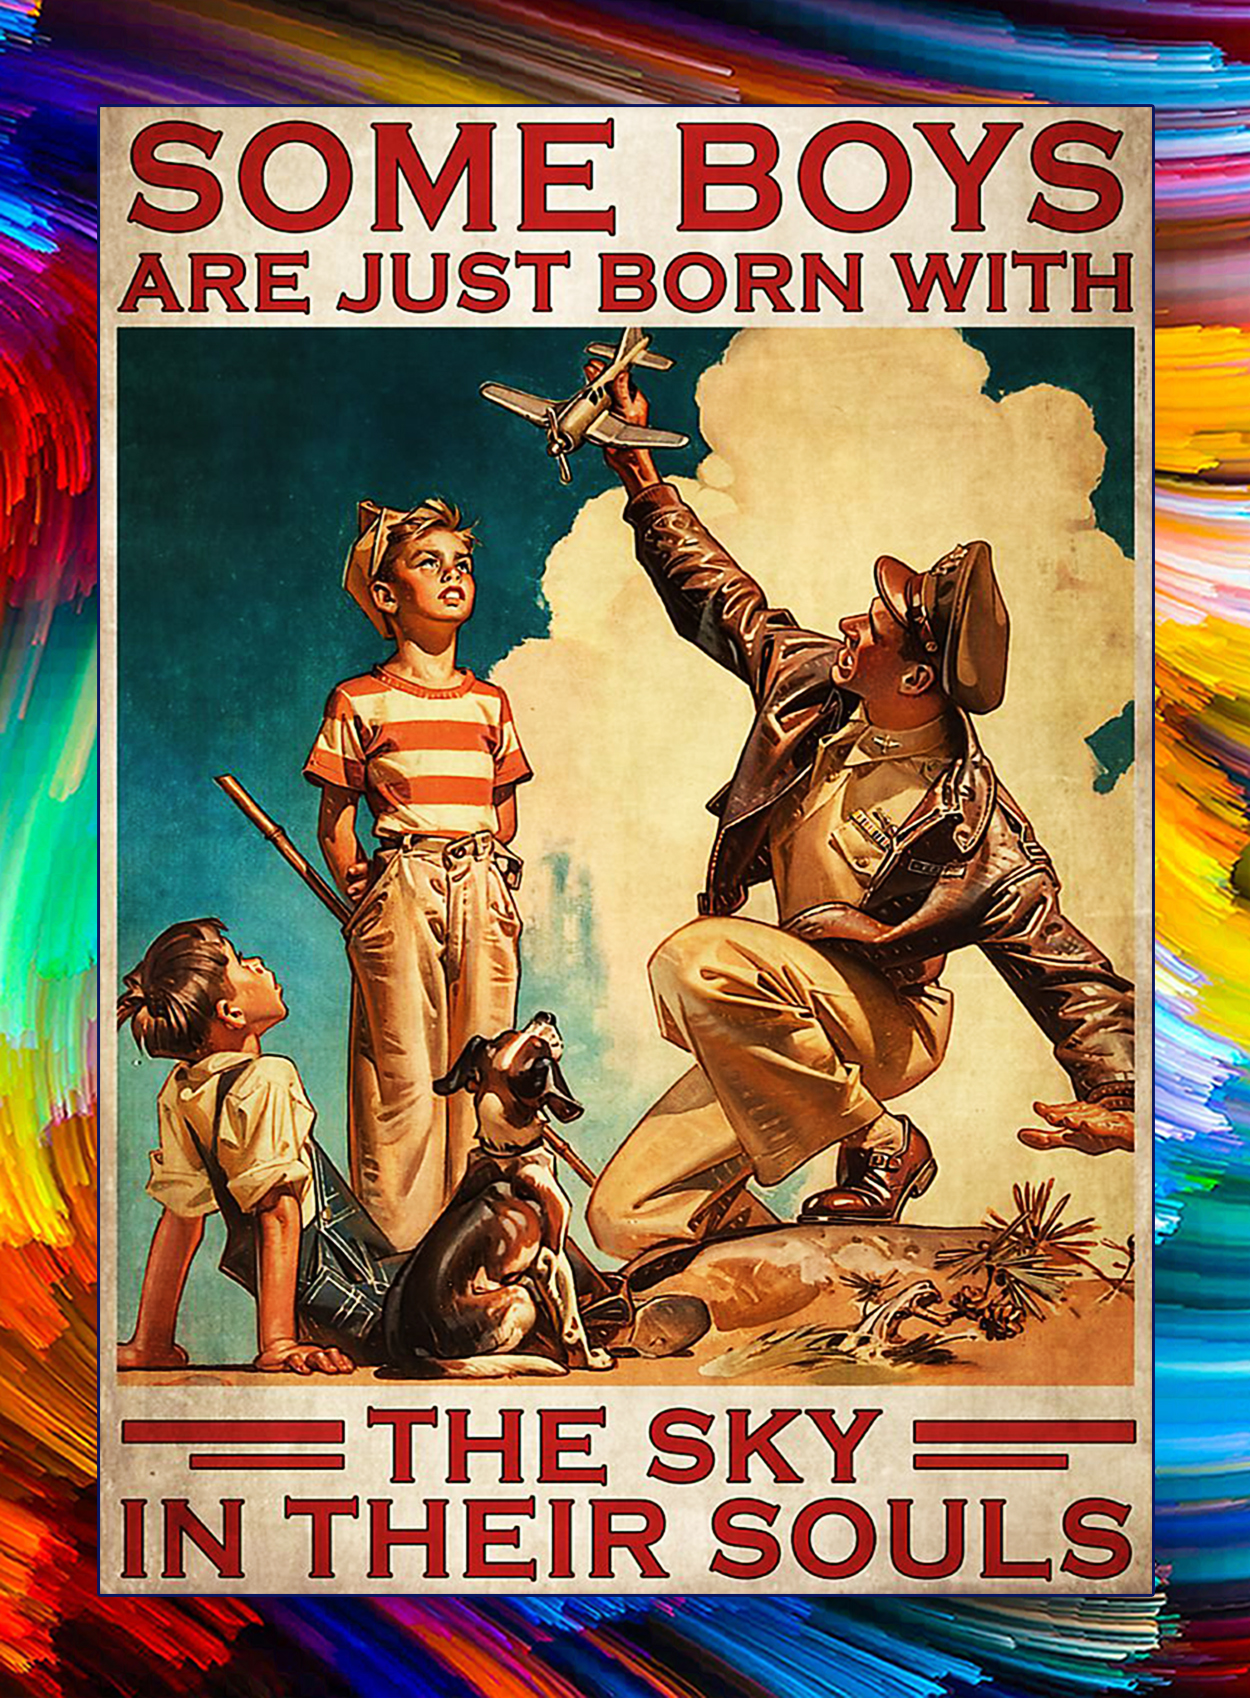 Some boys are just born with the sky in their souls poster - A2